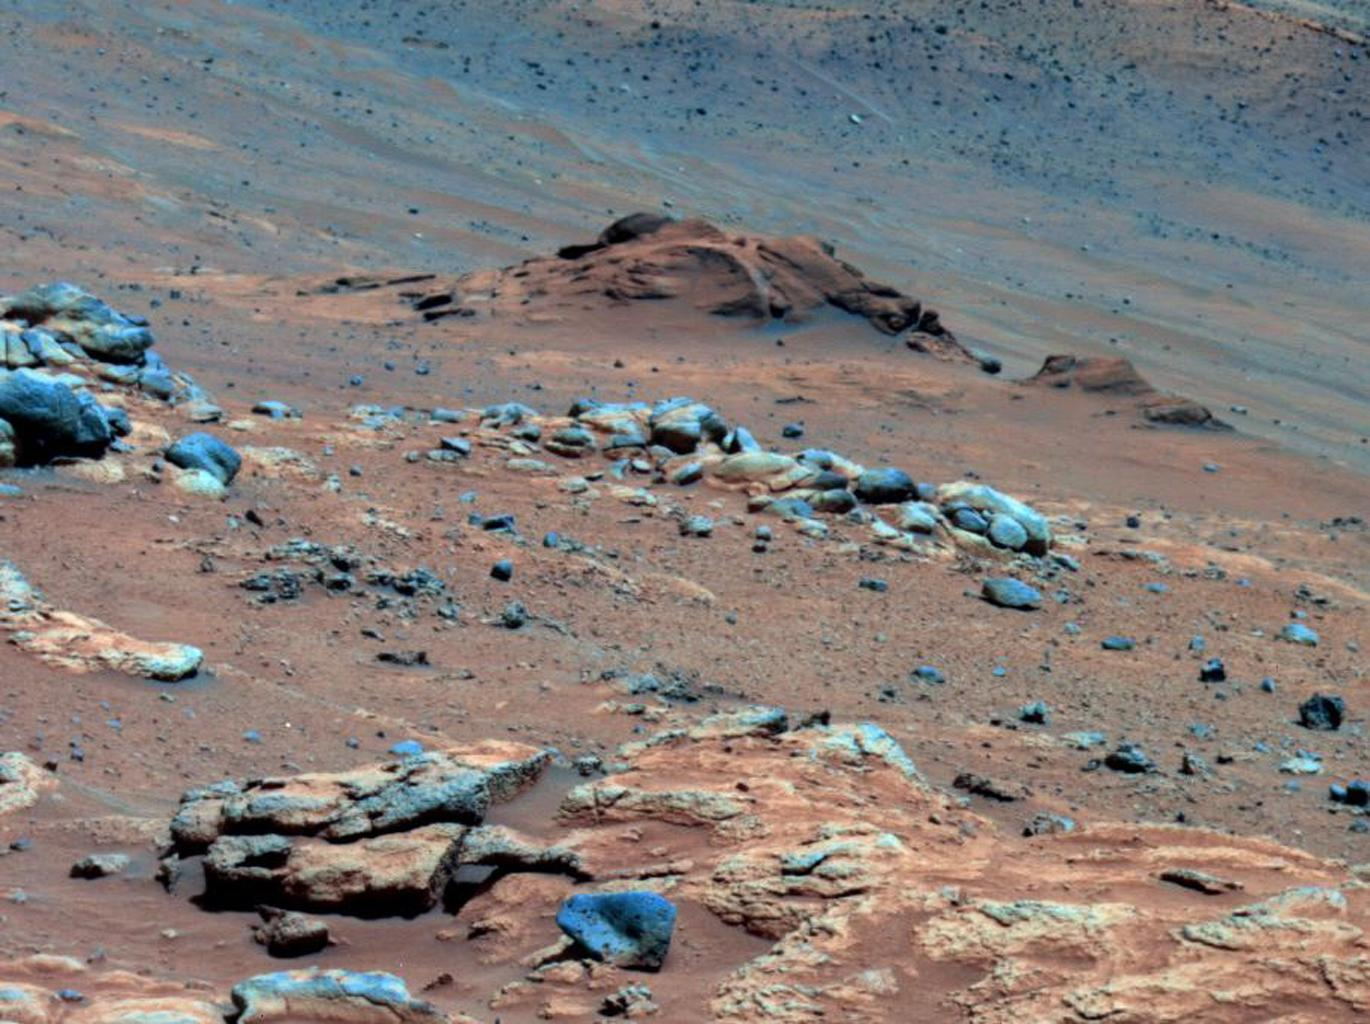 Lengthy detective work from data collected by NASA's rover Spirit confirmed that an outcrop called 'Comanche' contains a mineral indicating that a past environment was wet and non-acidic, possibly favorable to life.